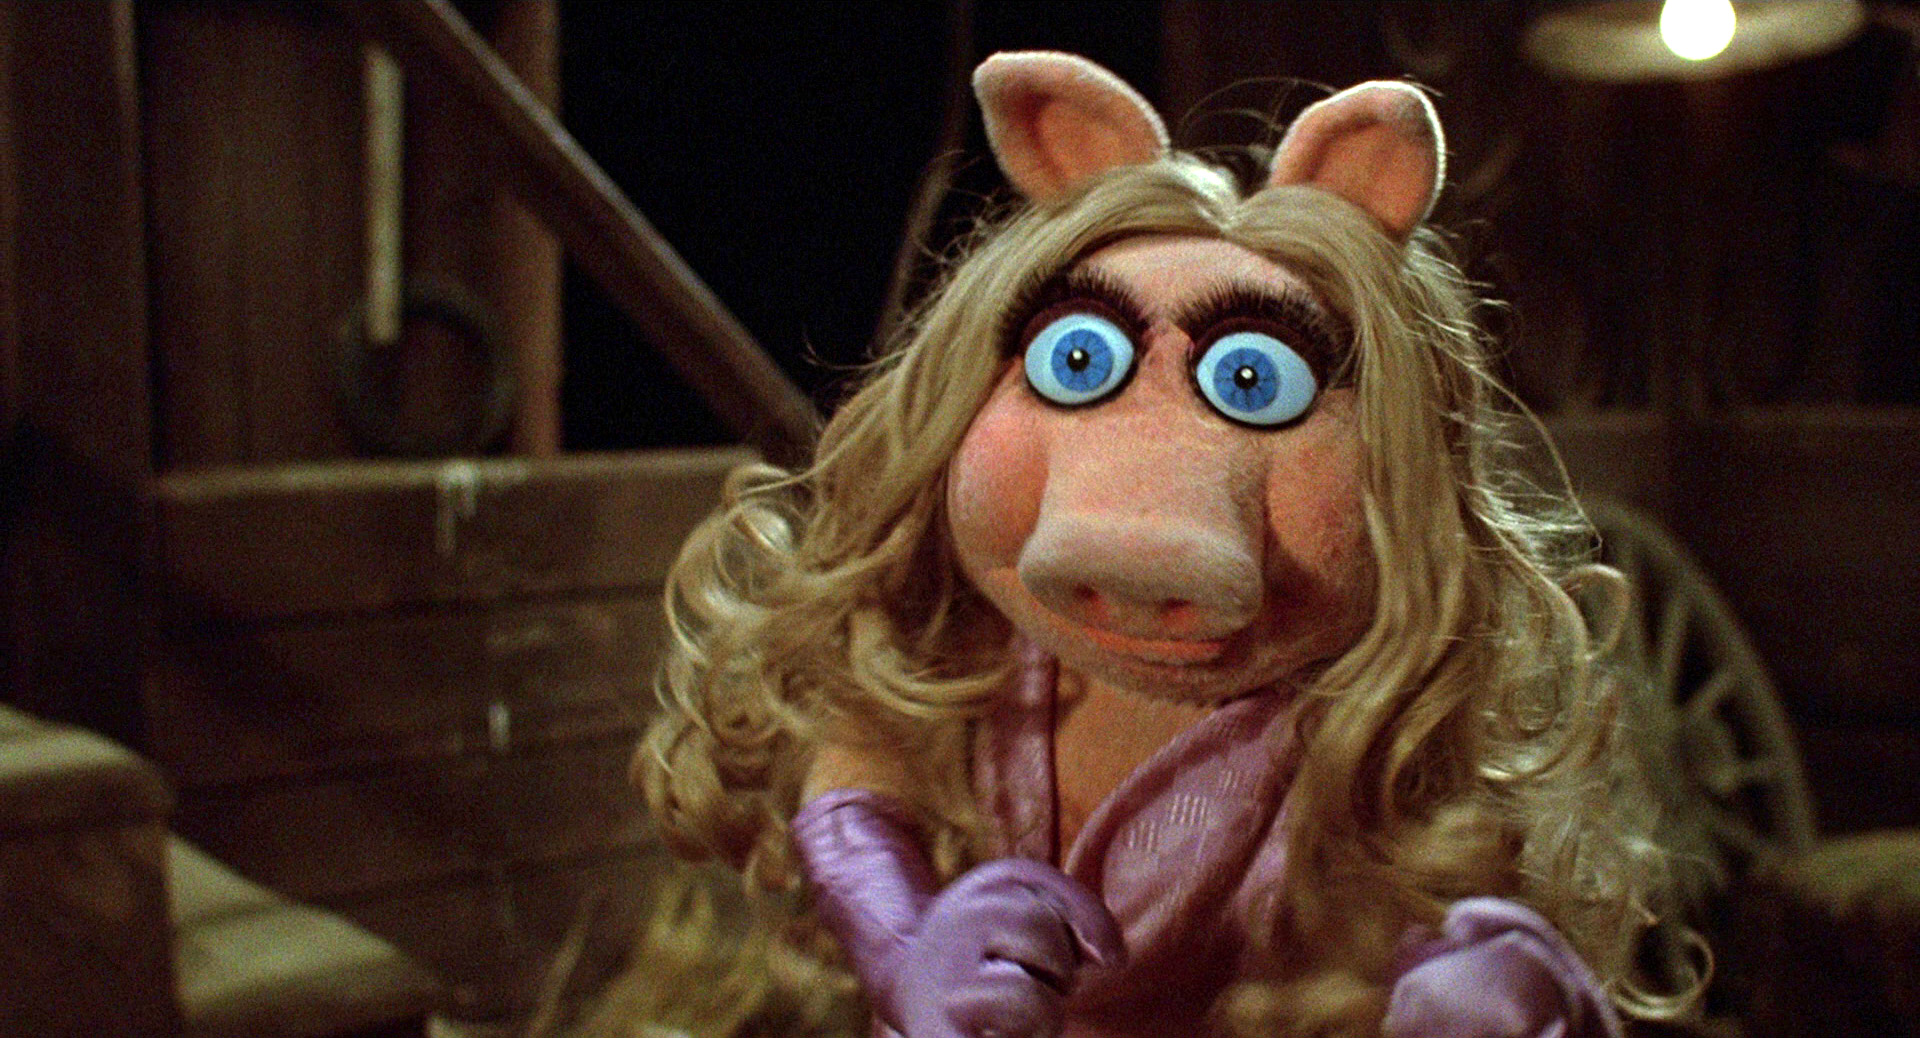 Miss Piggy S Emotion Eyes Variants Muppet Wiki Fandom